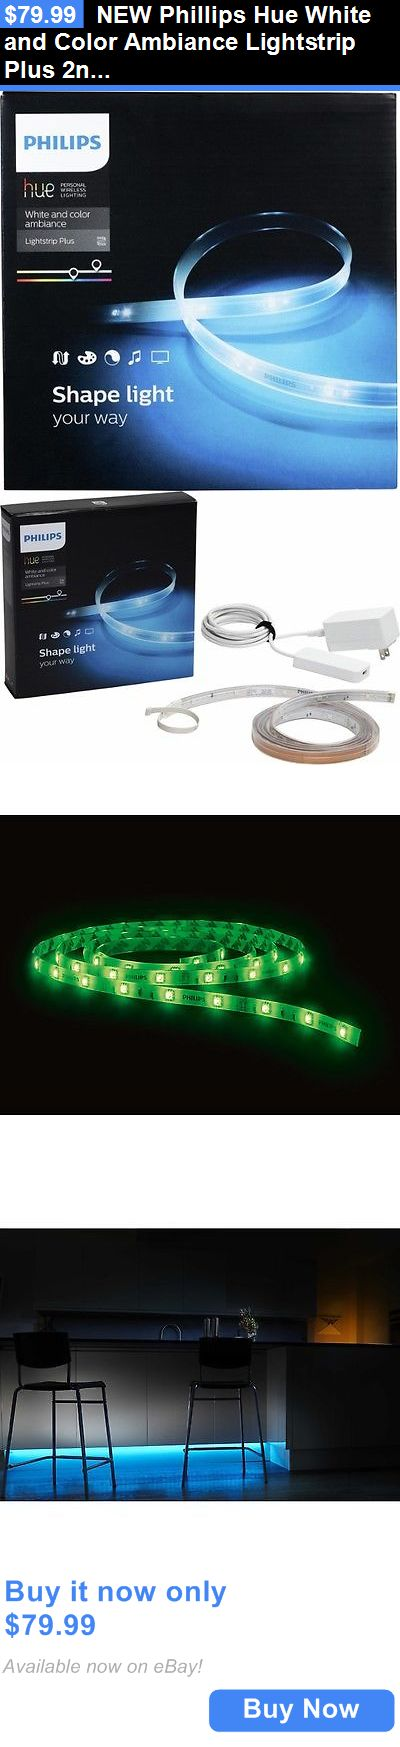 Other Home Automation: New Phillips Hue White And Color Ambiance Lightstrip Plus 2Nd Generation BUY IT NOW ONLY: $79.99